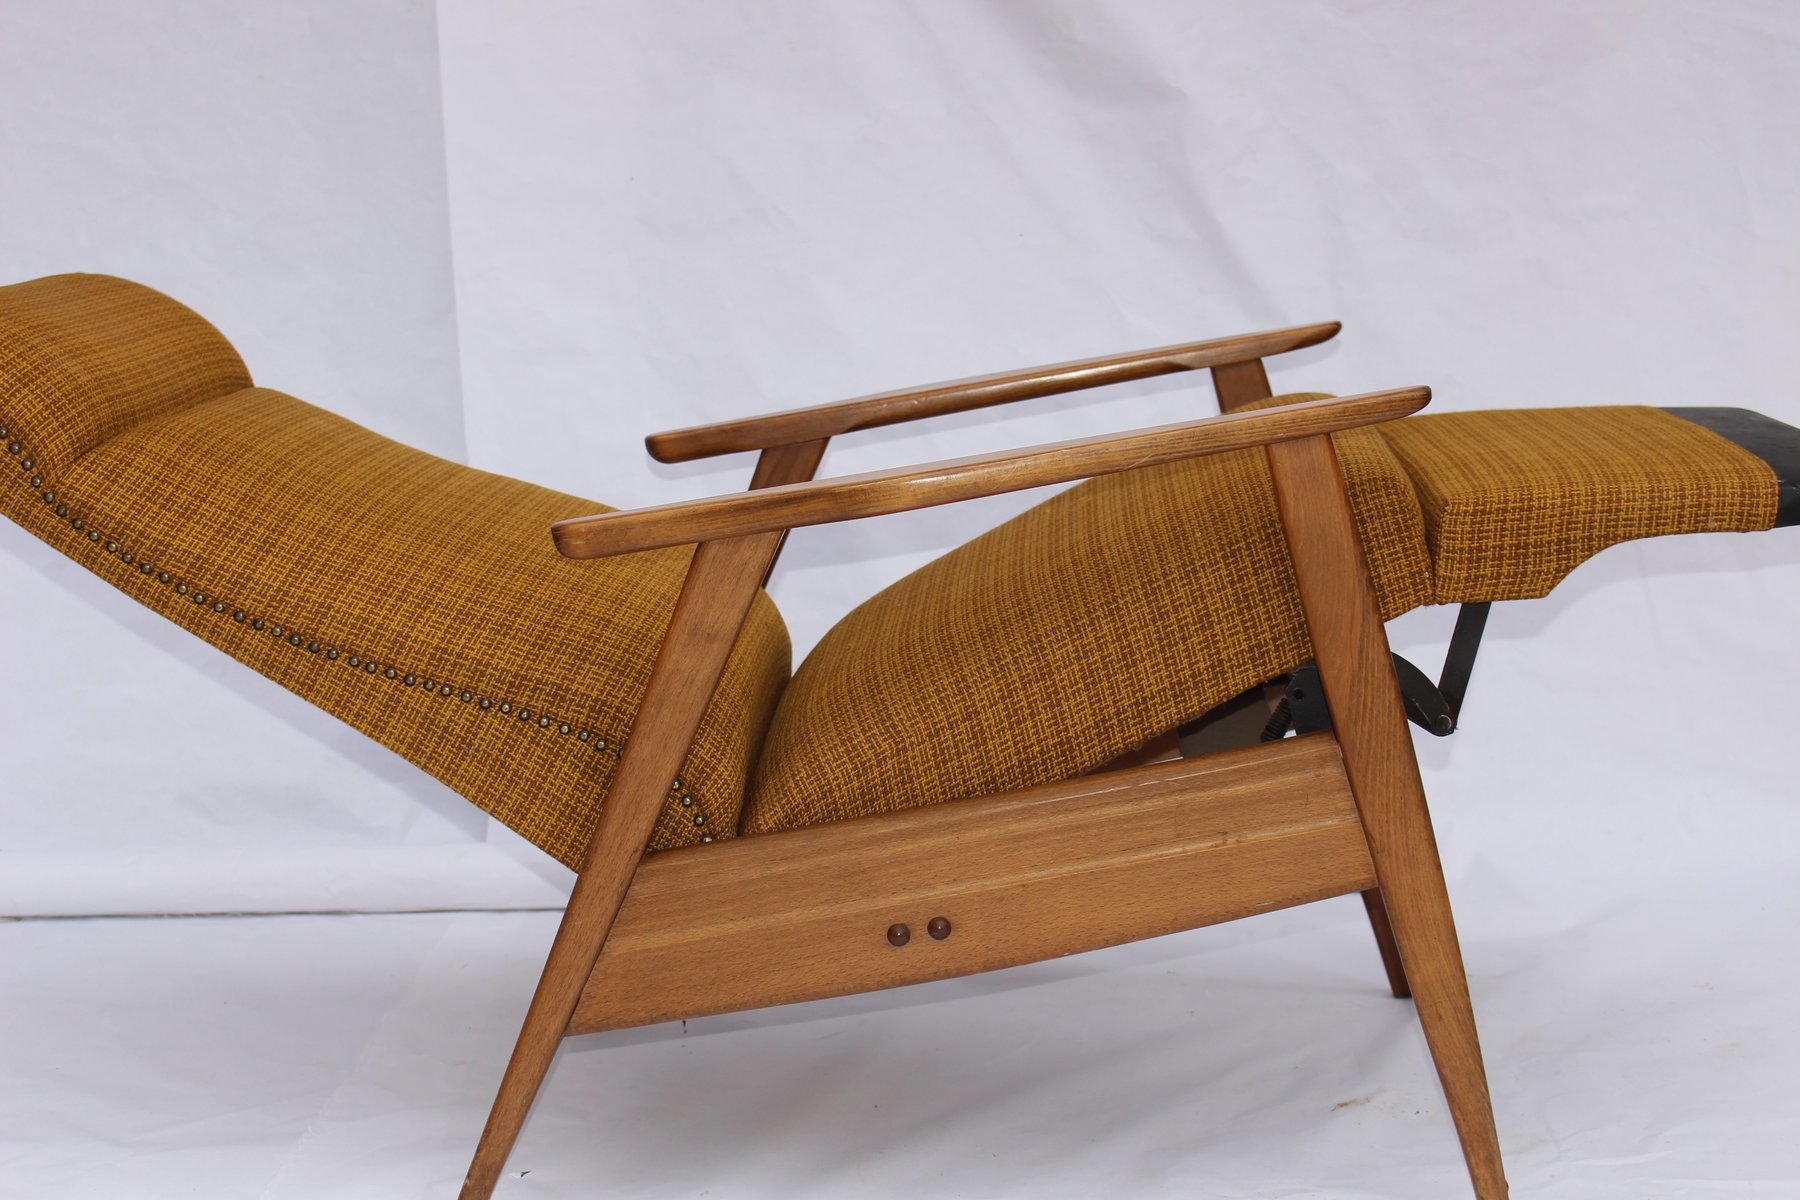 Reclining Lounge Chair 1950 : recliner lounge chair - islam-shia.org